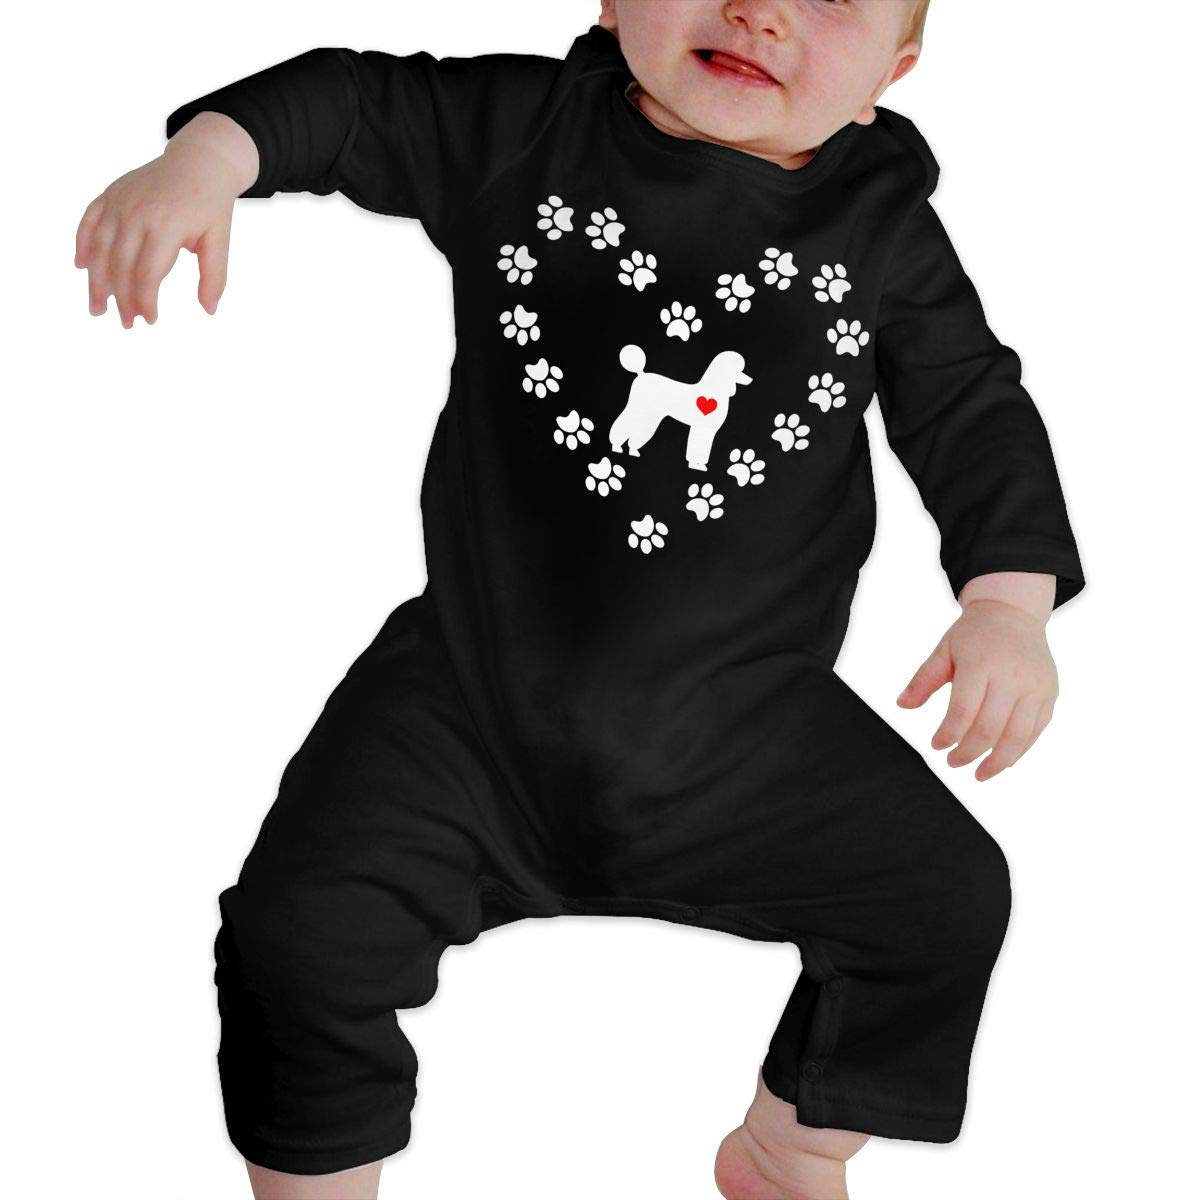 Mri-le1 Baby Girls Bodysuits Poodle Dog Heart-1 Toddler Jumpsuit